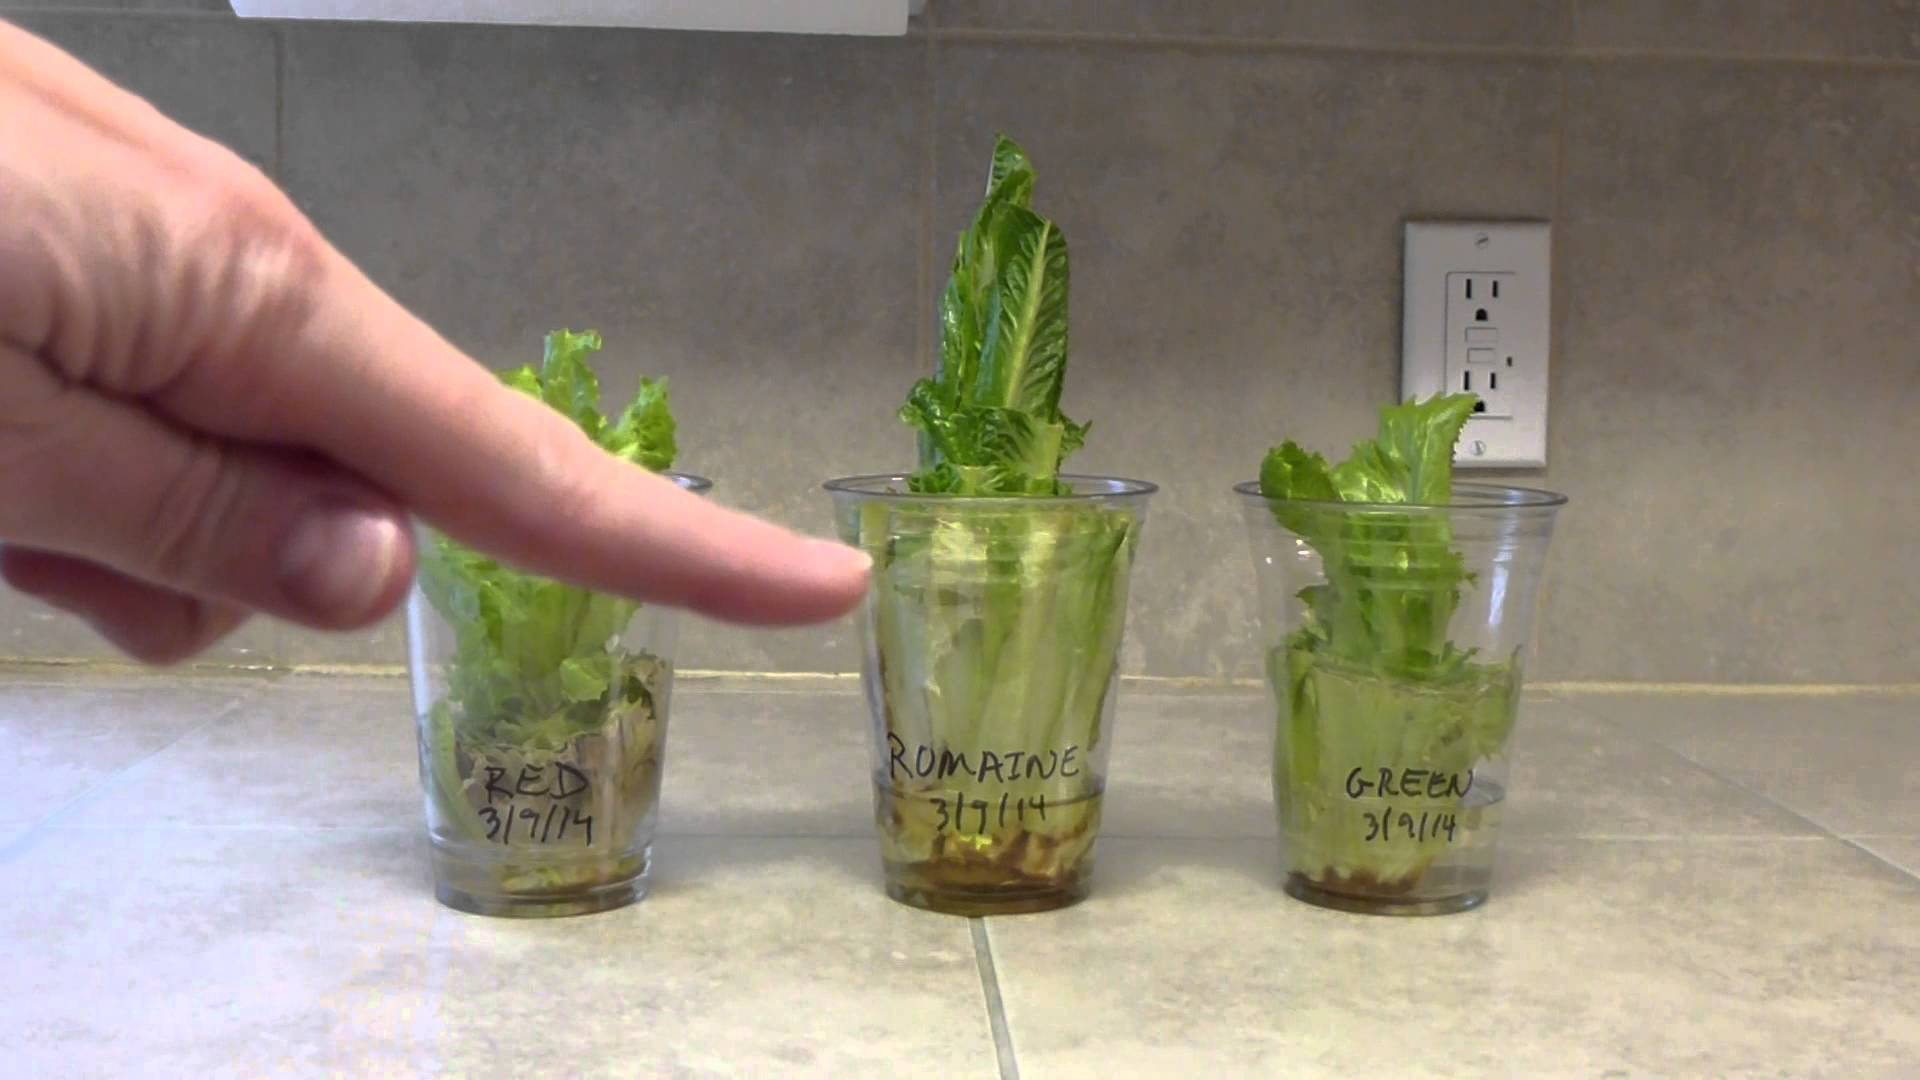 Herbs growing in a container in the kitchen